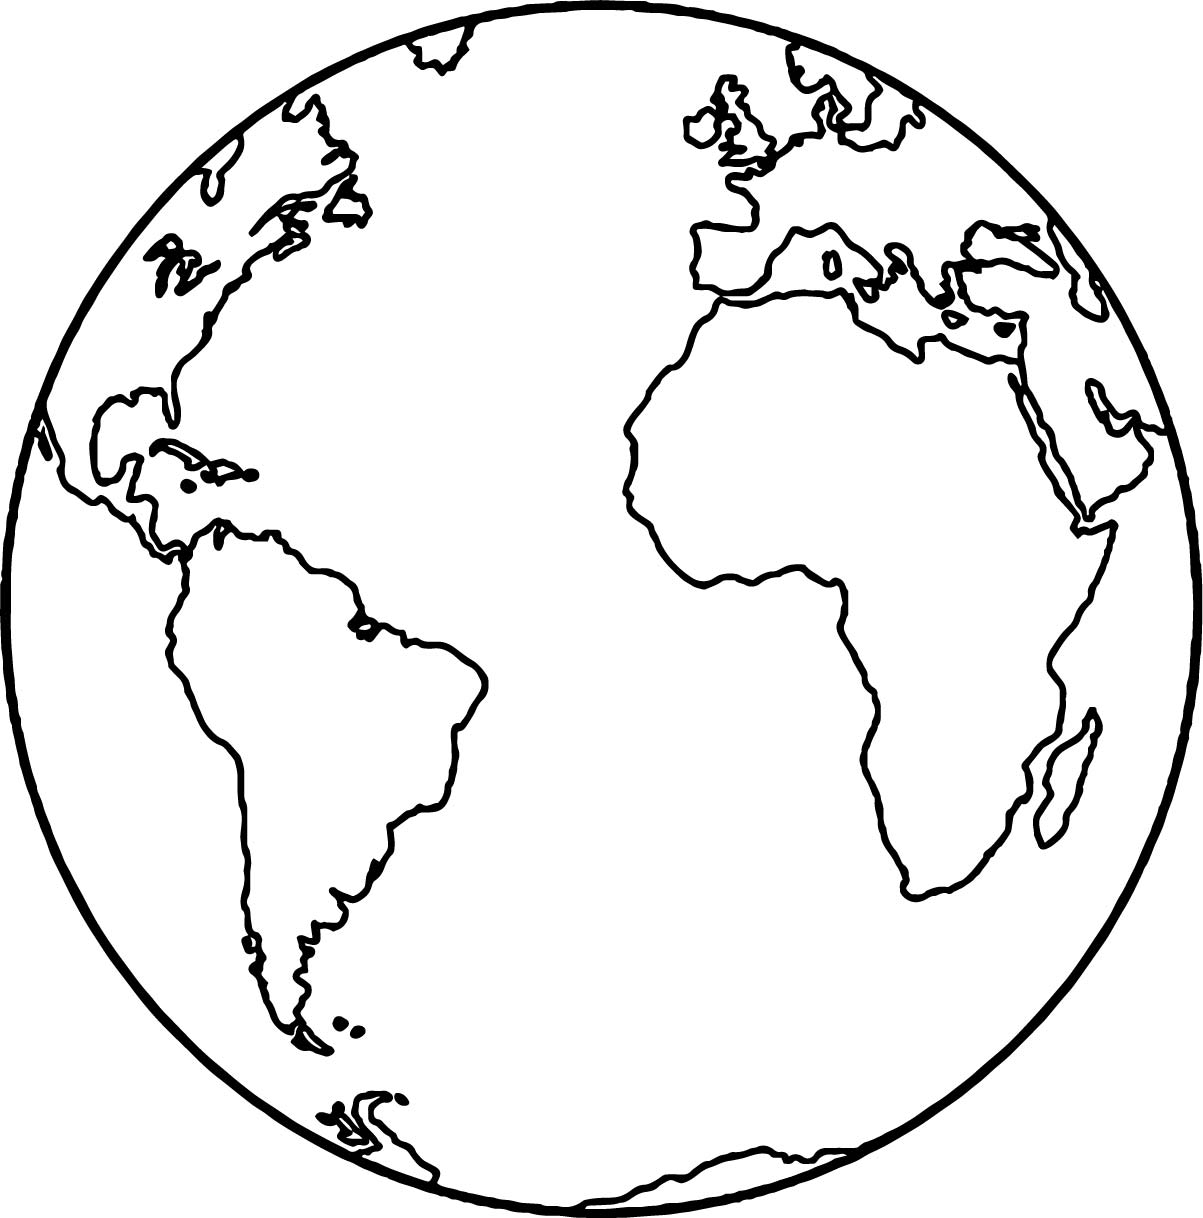 1203x1218 Earth Globe Coloring Page Wecoloringpage